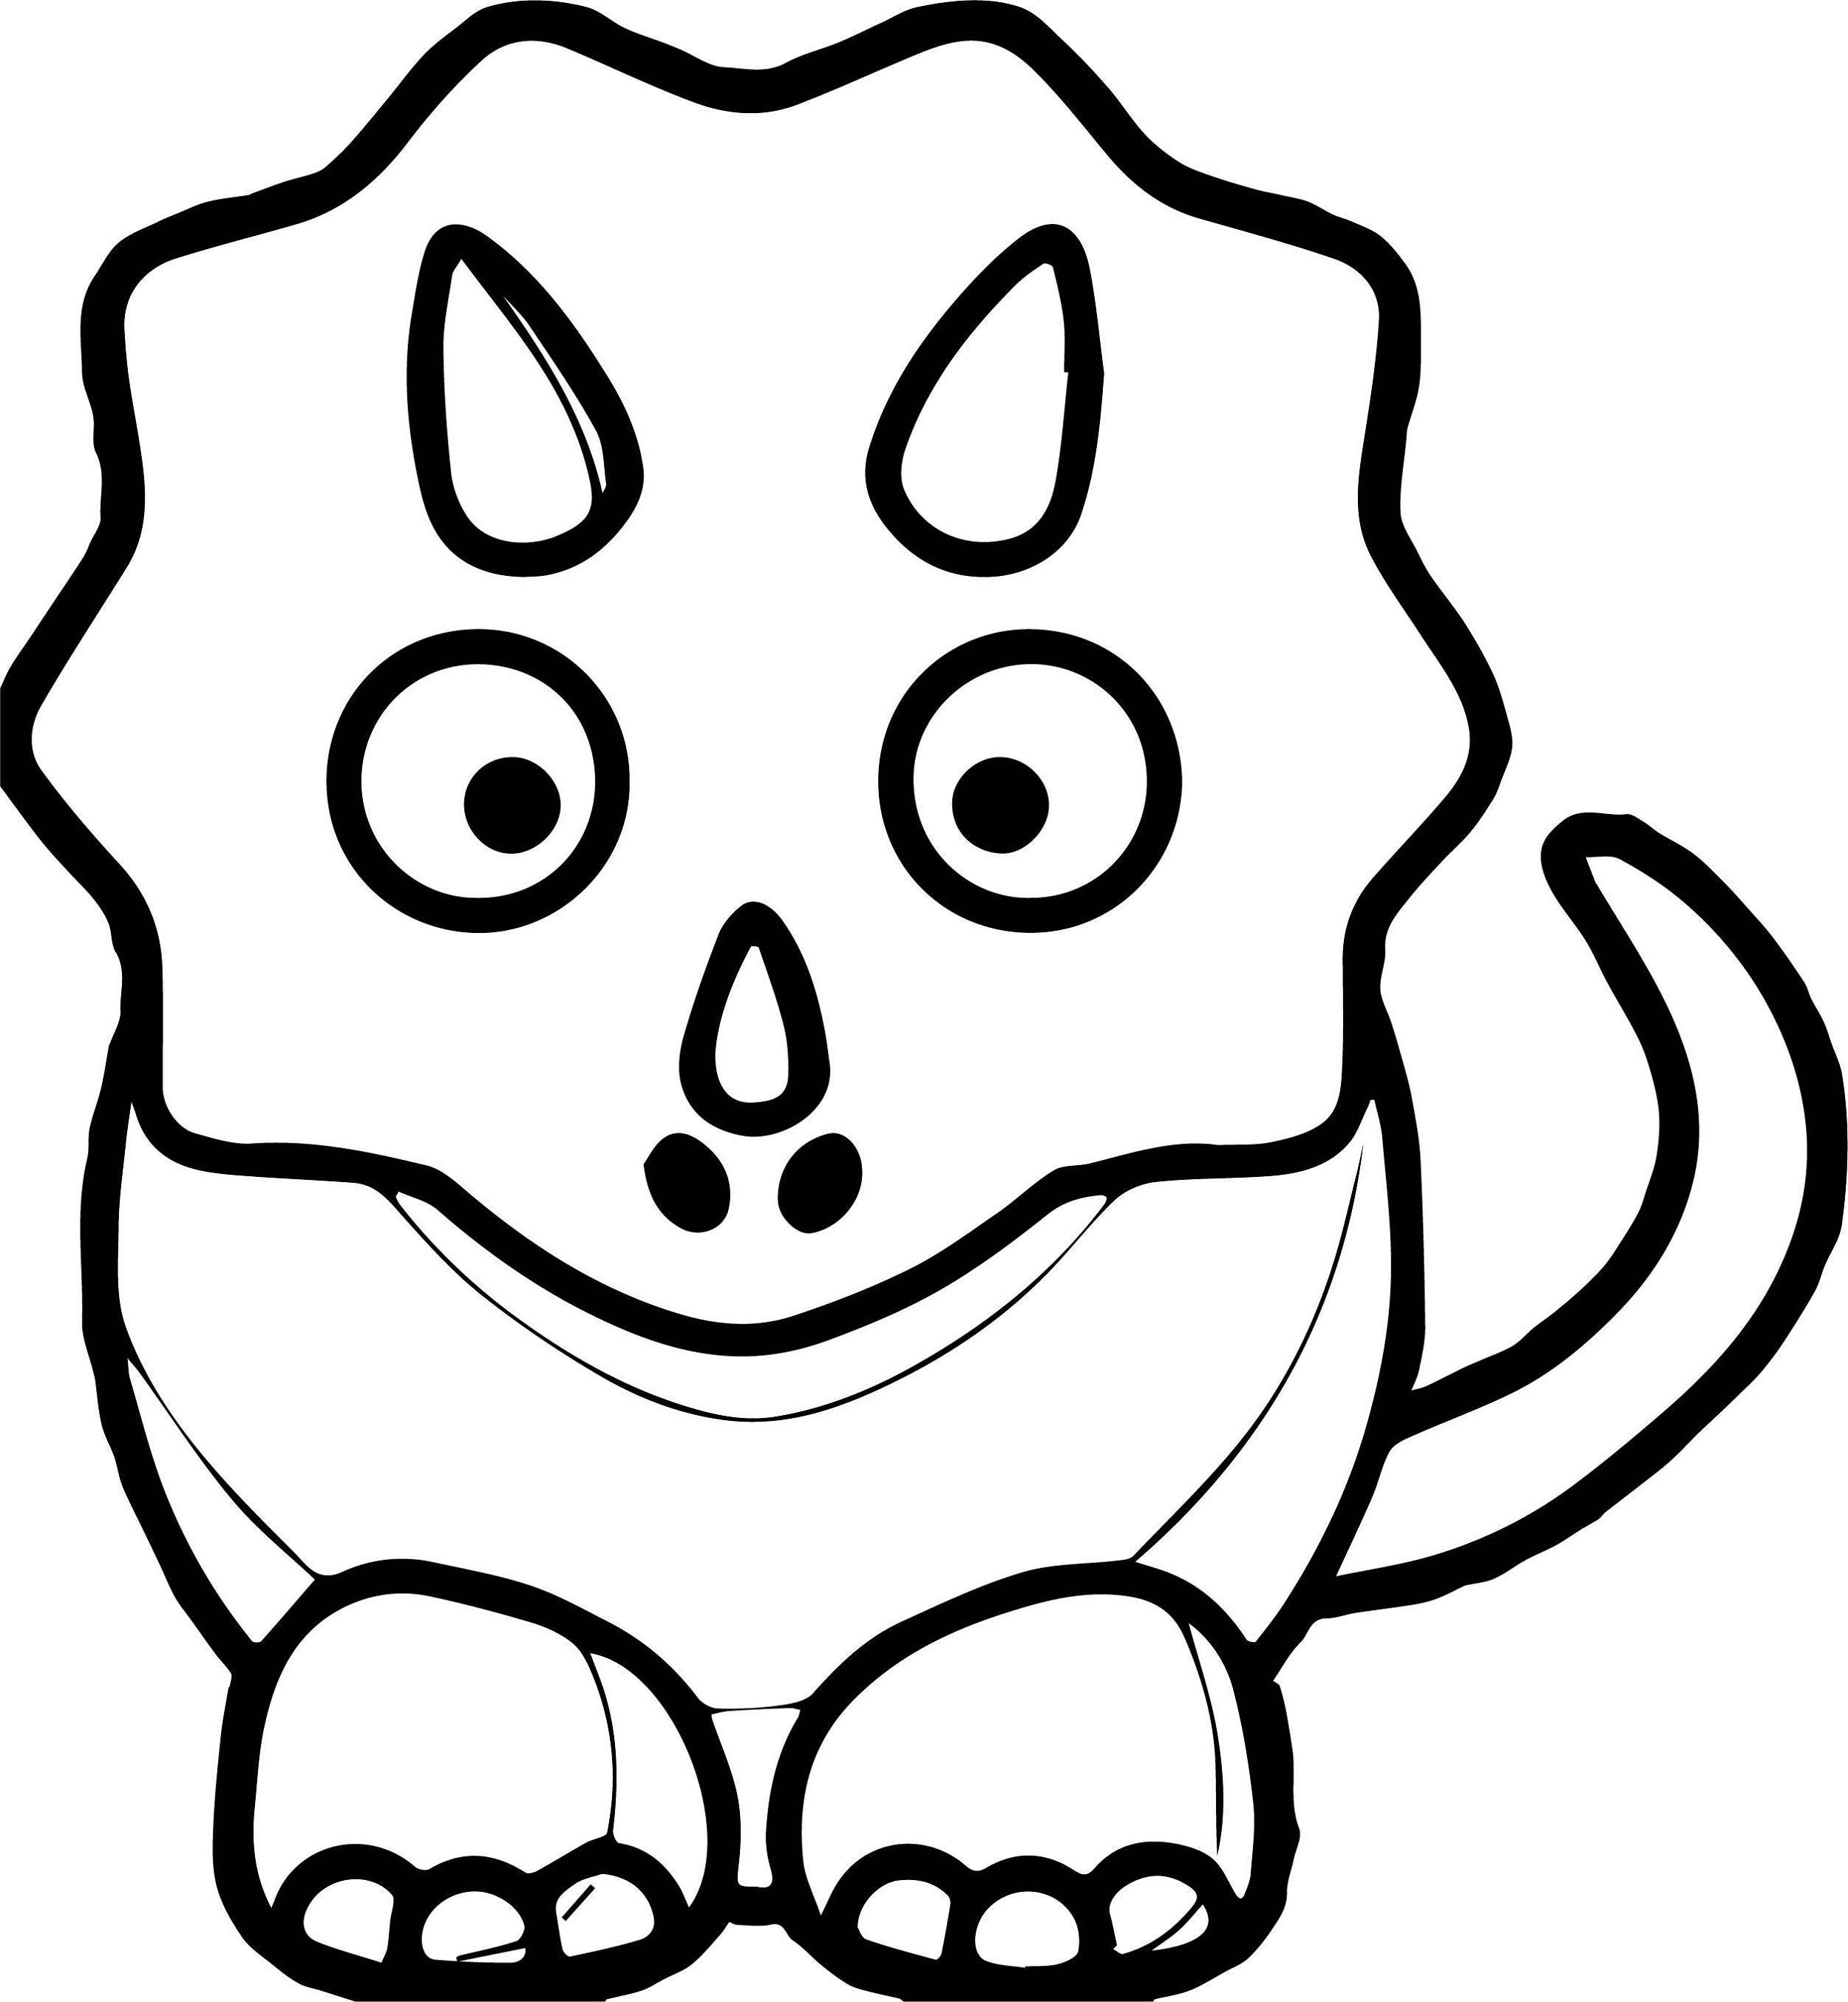 dinosaurs colouring pages dinosaurs to color for kids ba dinosaurs kids coloring colouring pages dinosaurs